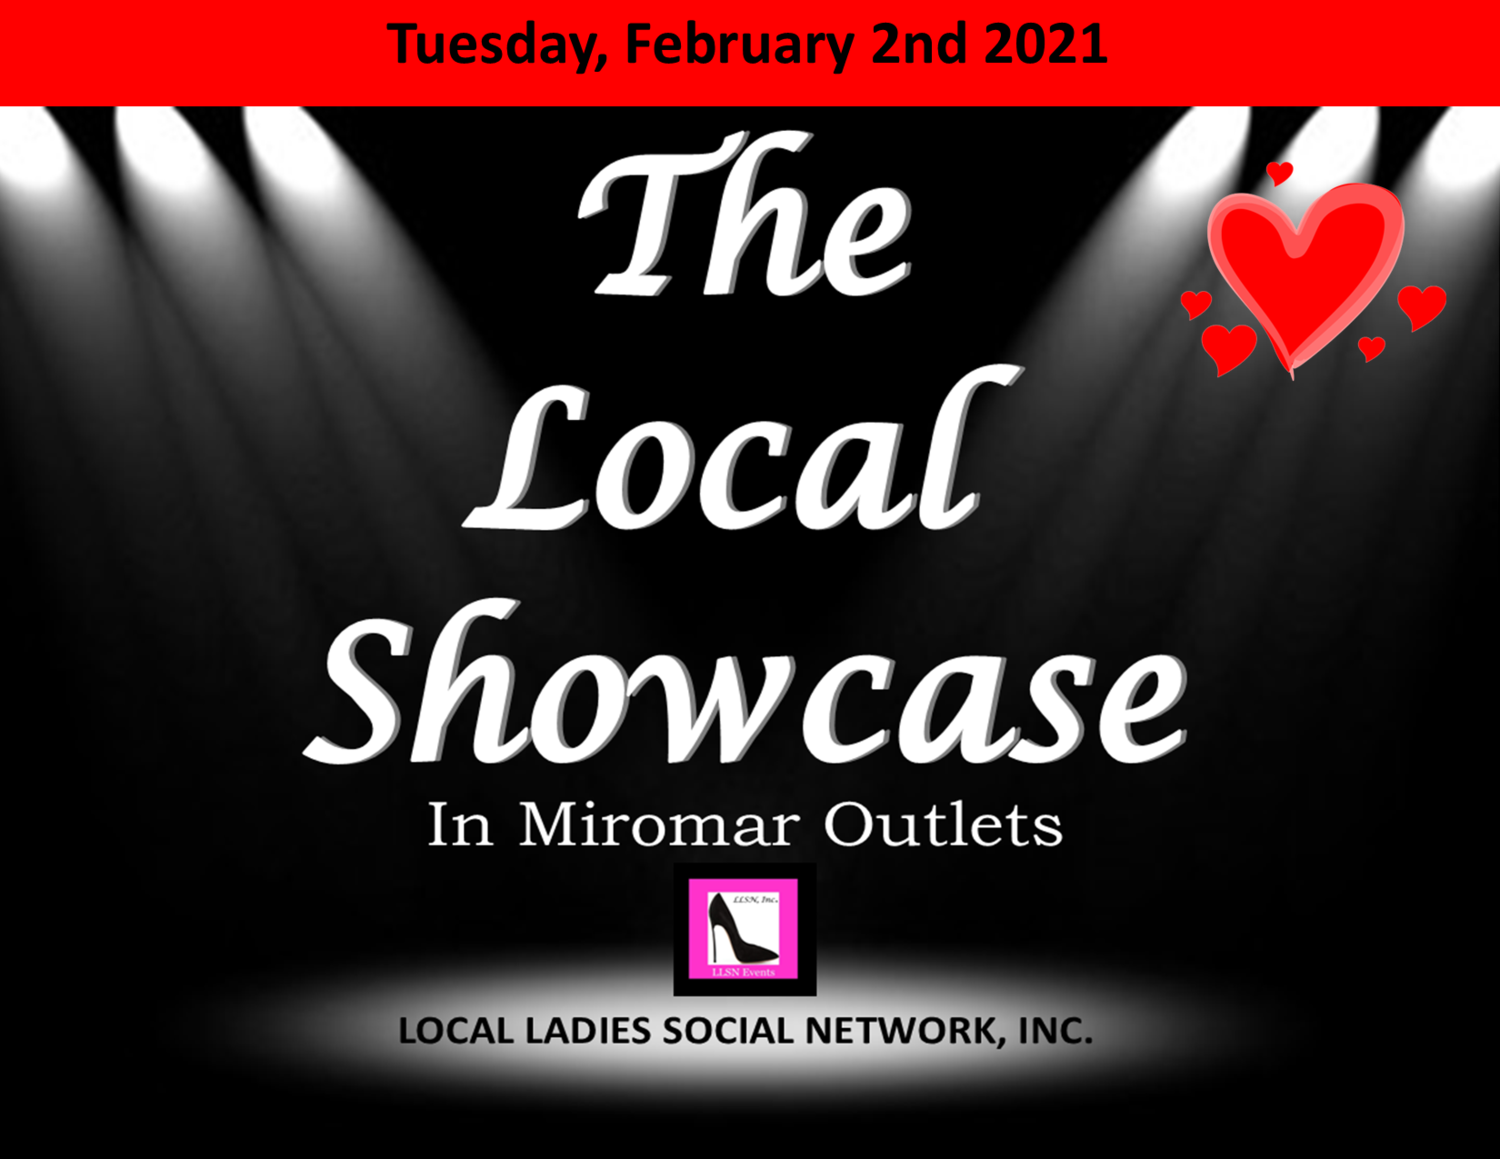 Tuesday, February 2nd 11am-7pm.